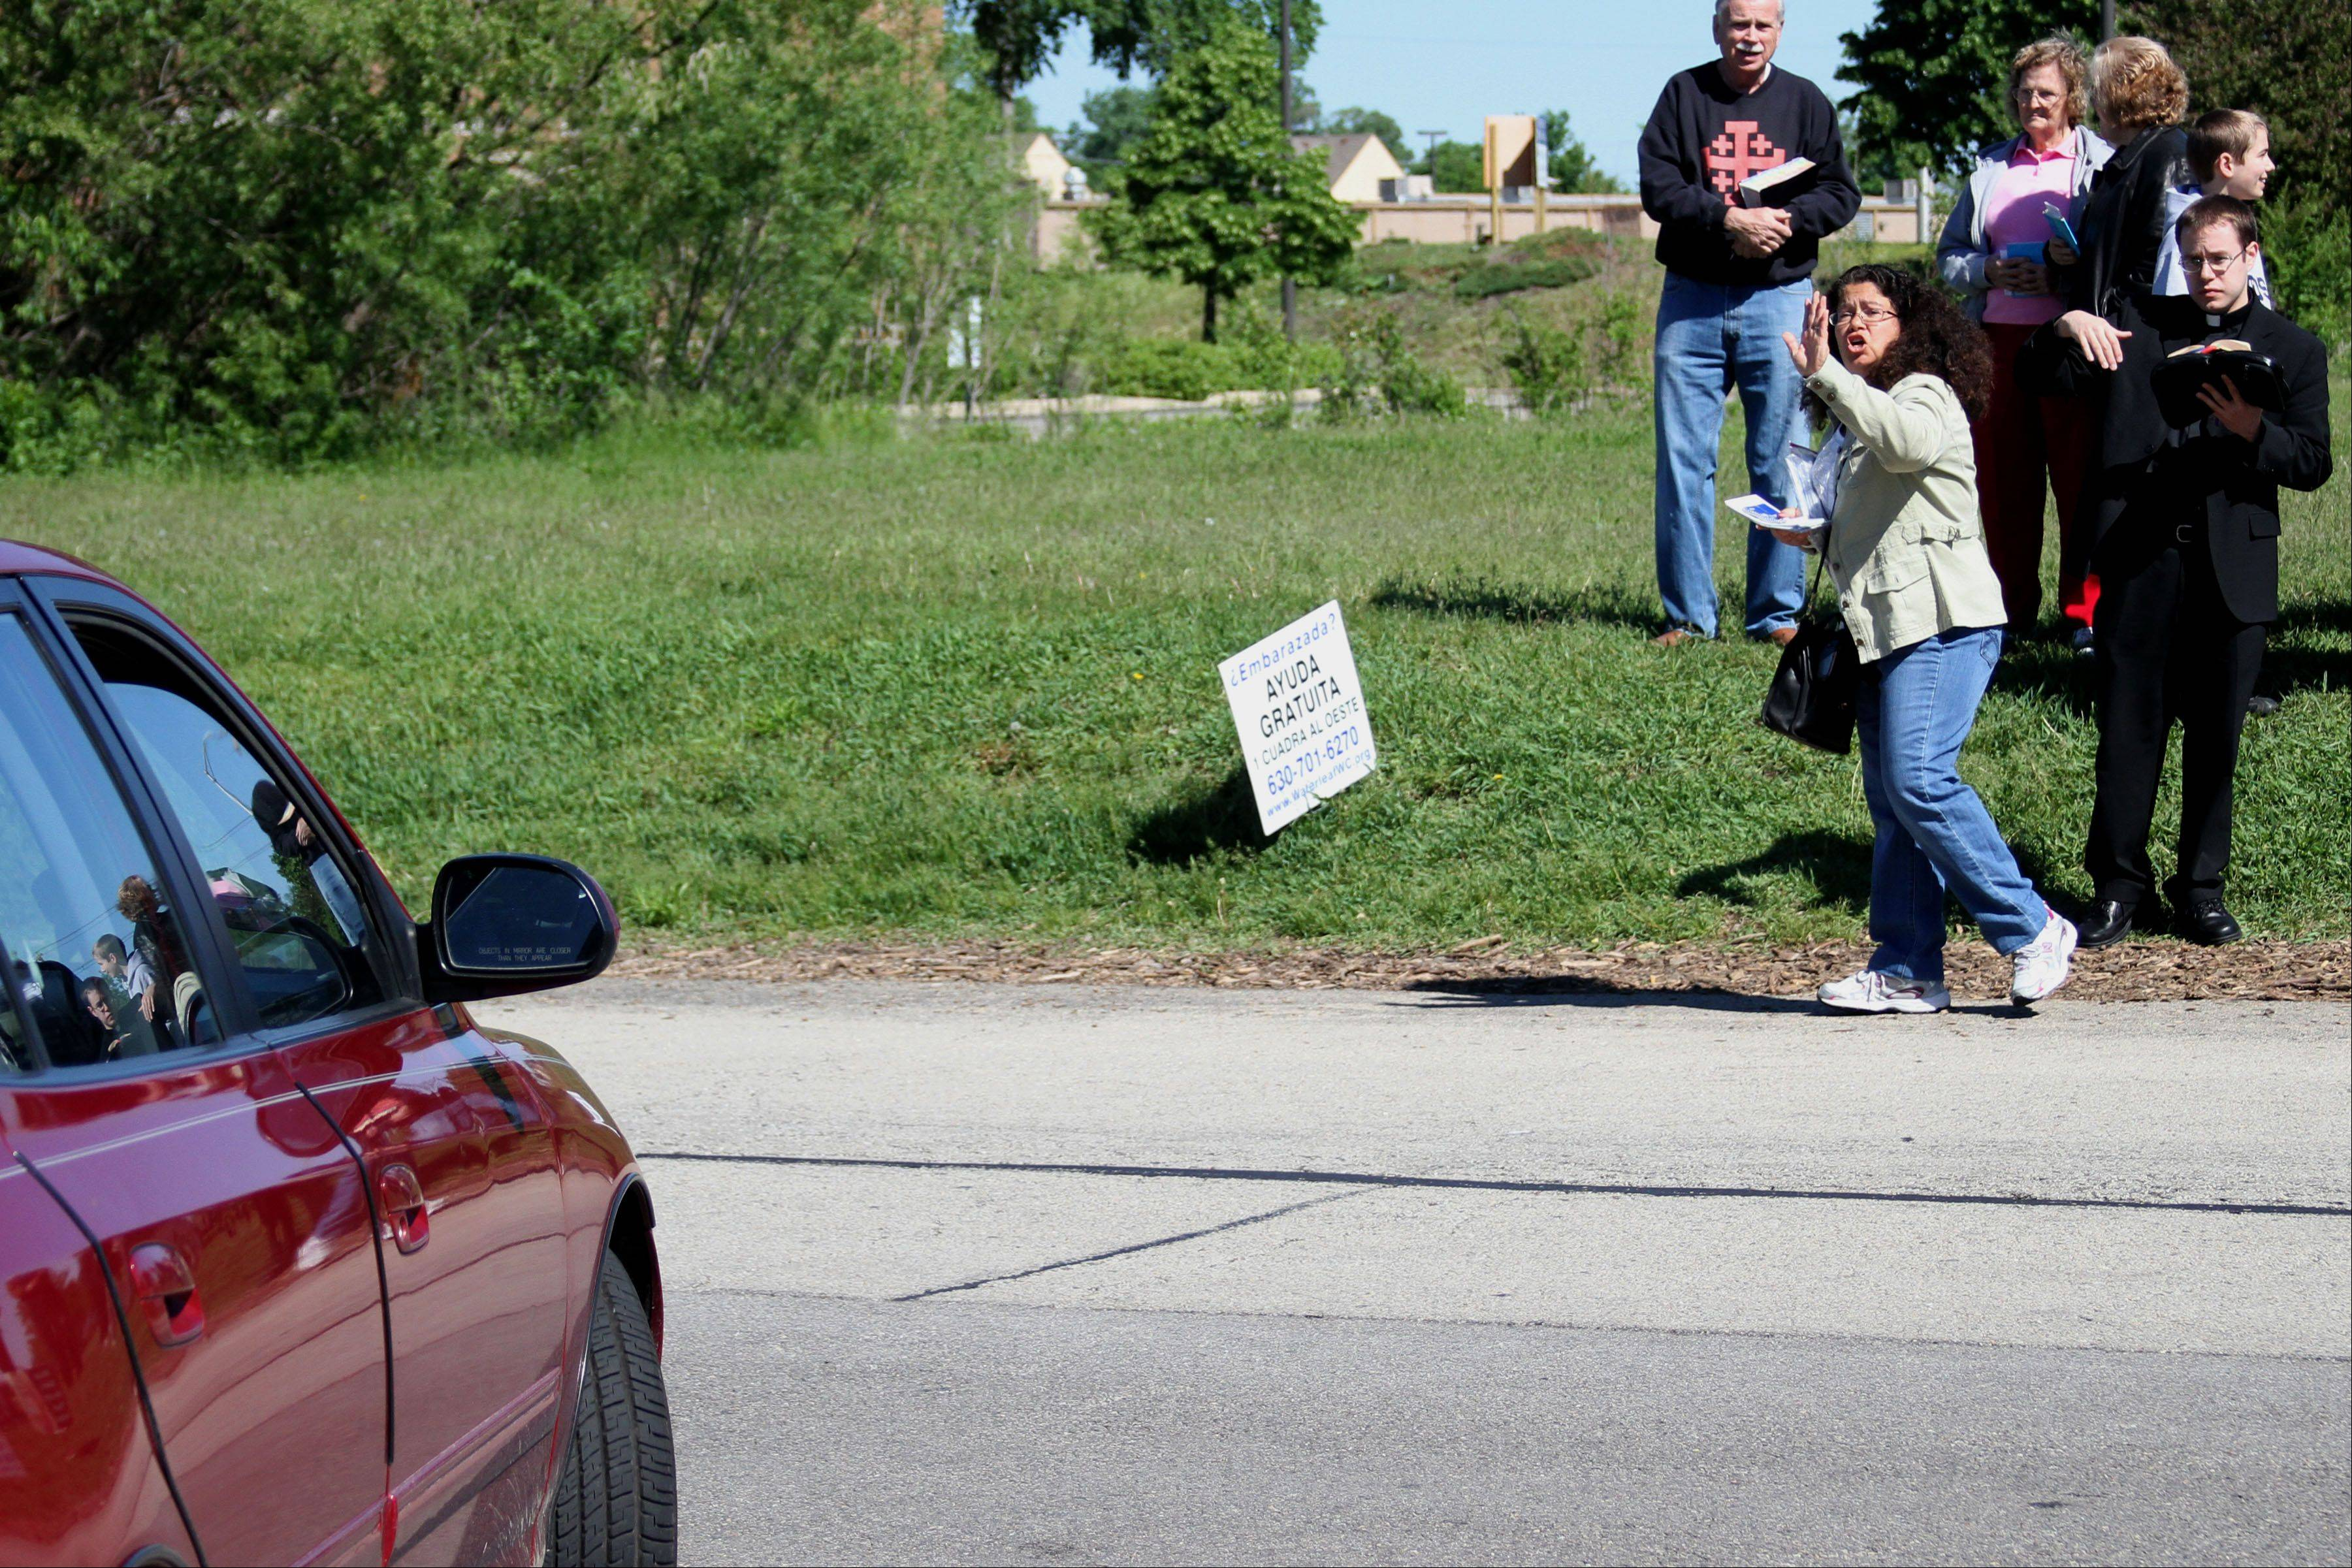 Aurora resident Marie Sulita flags down a passing car while handing out leaflets outside a Planned Parenthood clinic in Aurora.